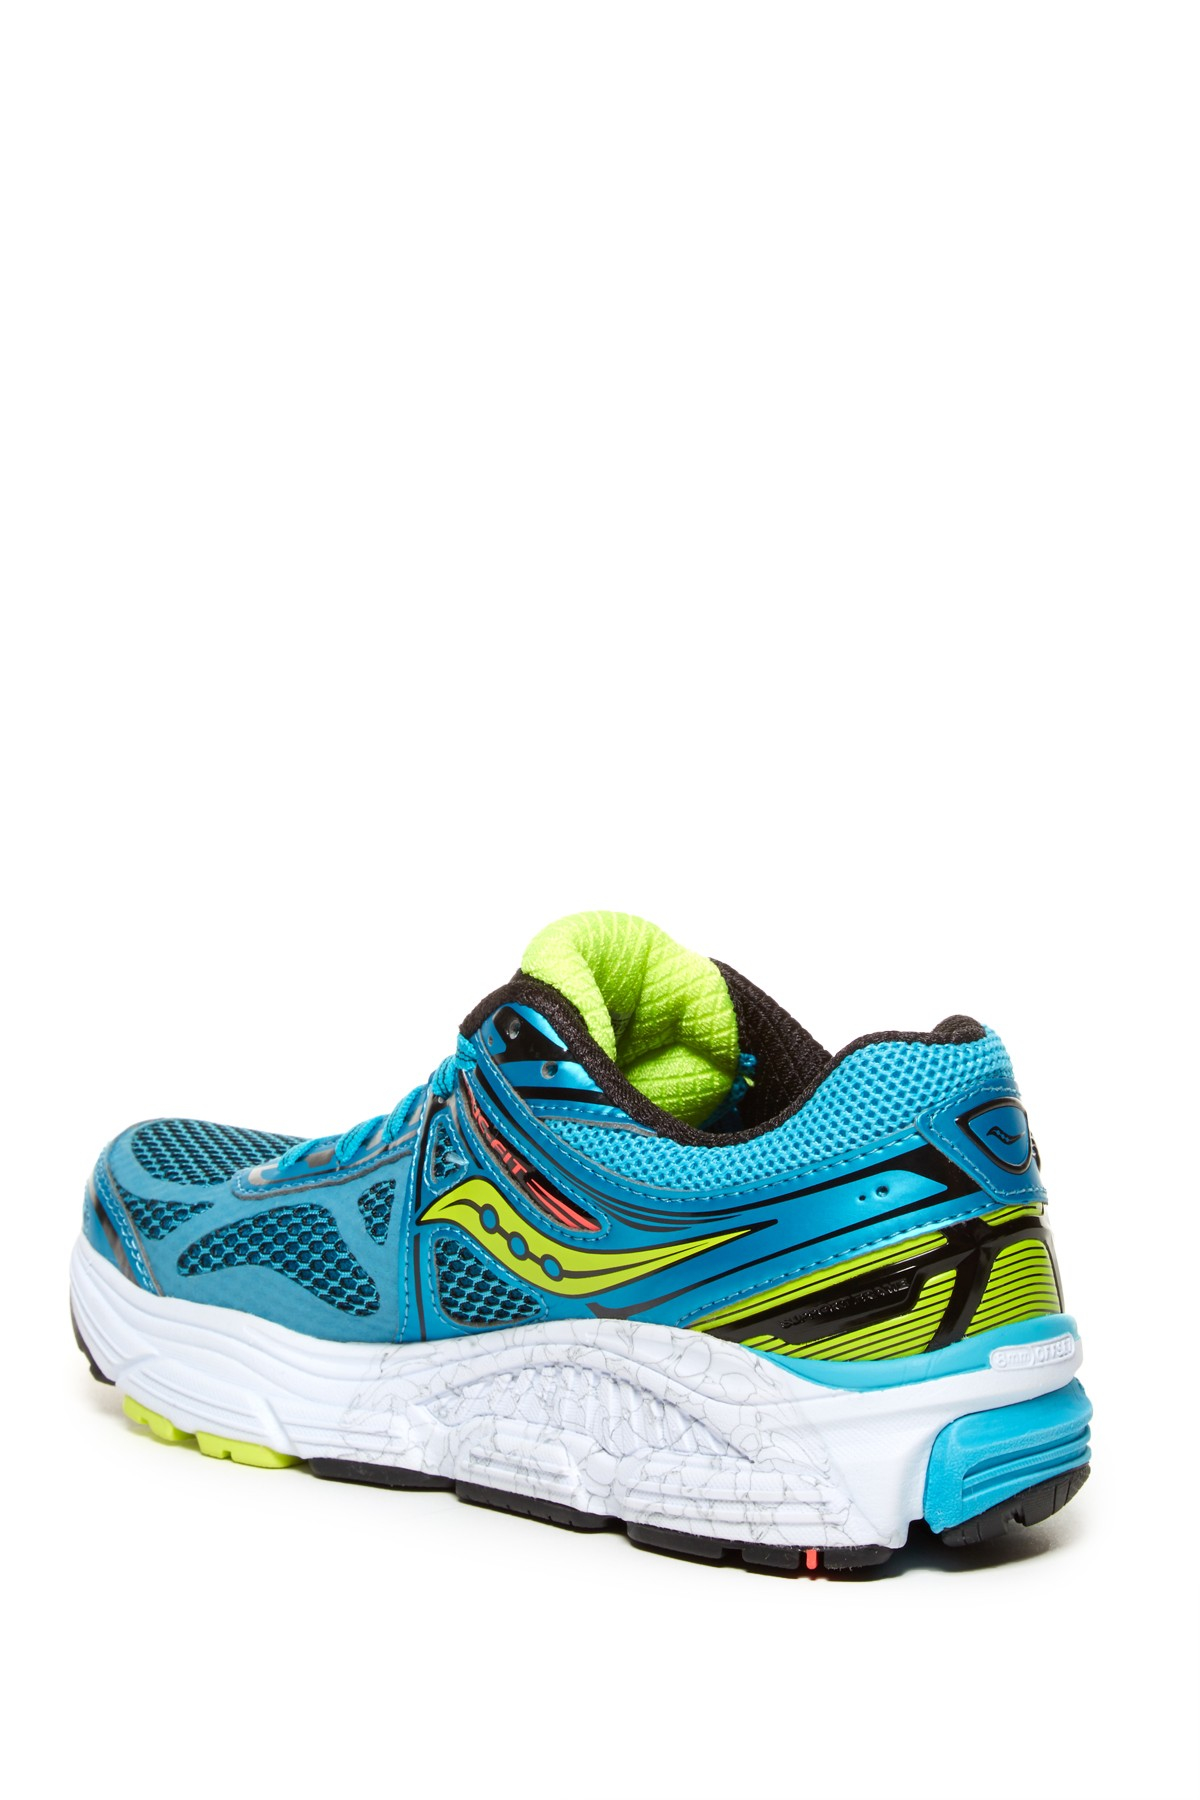 Aries Running Shoes